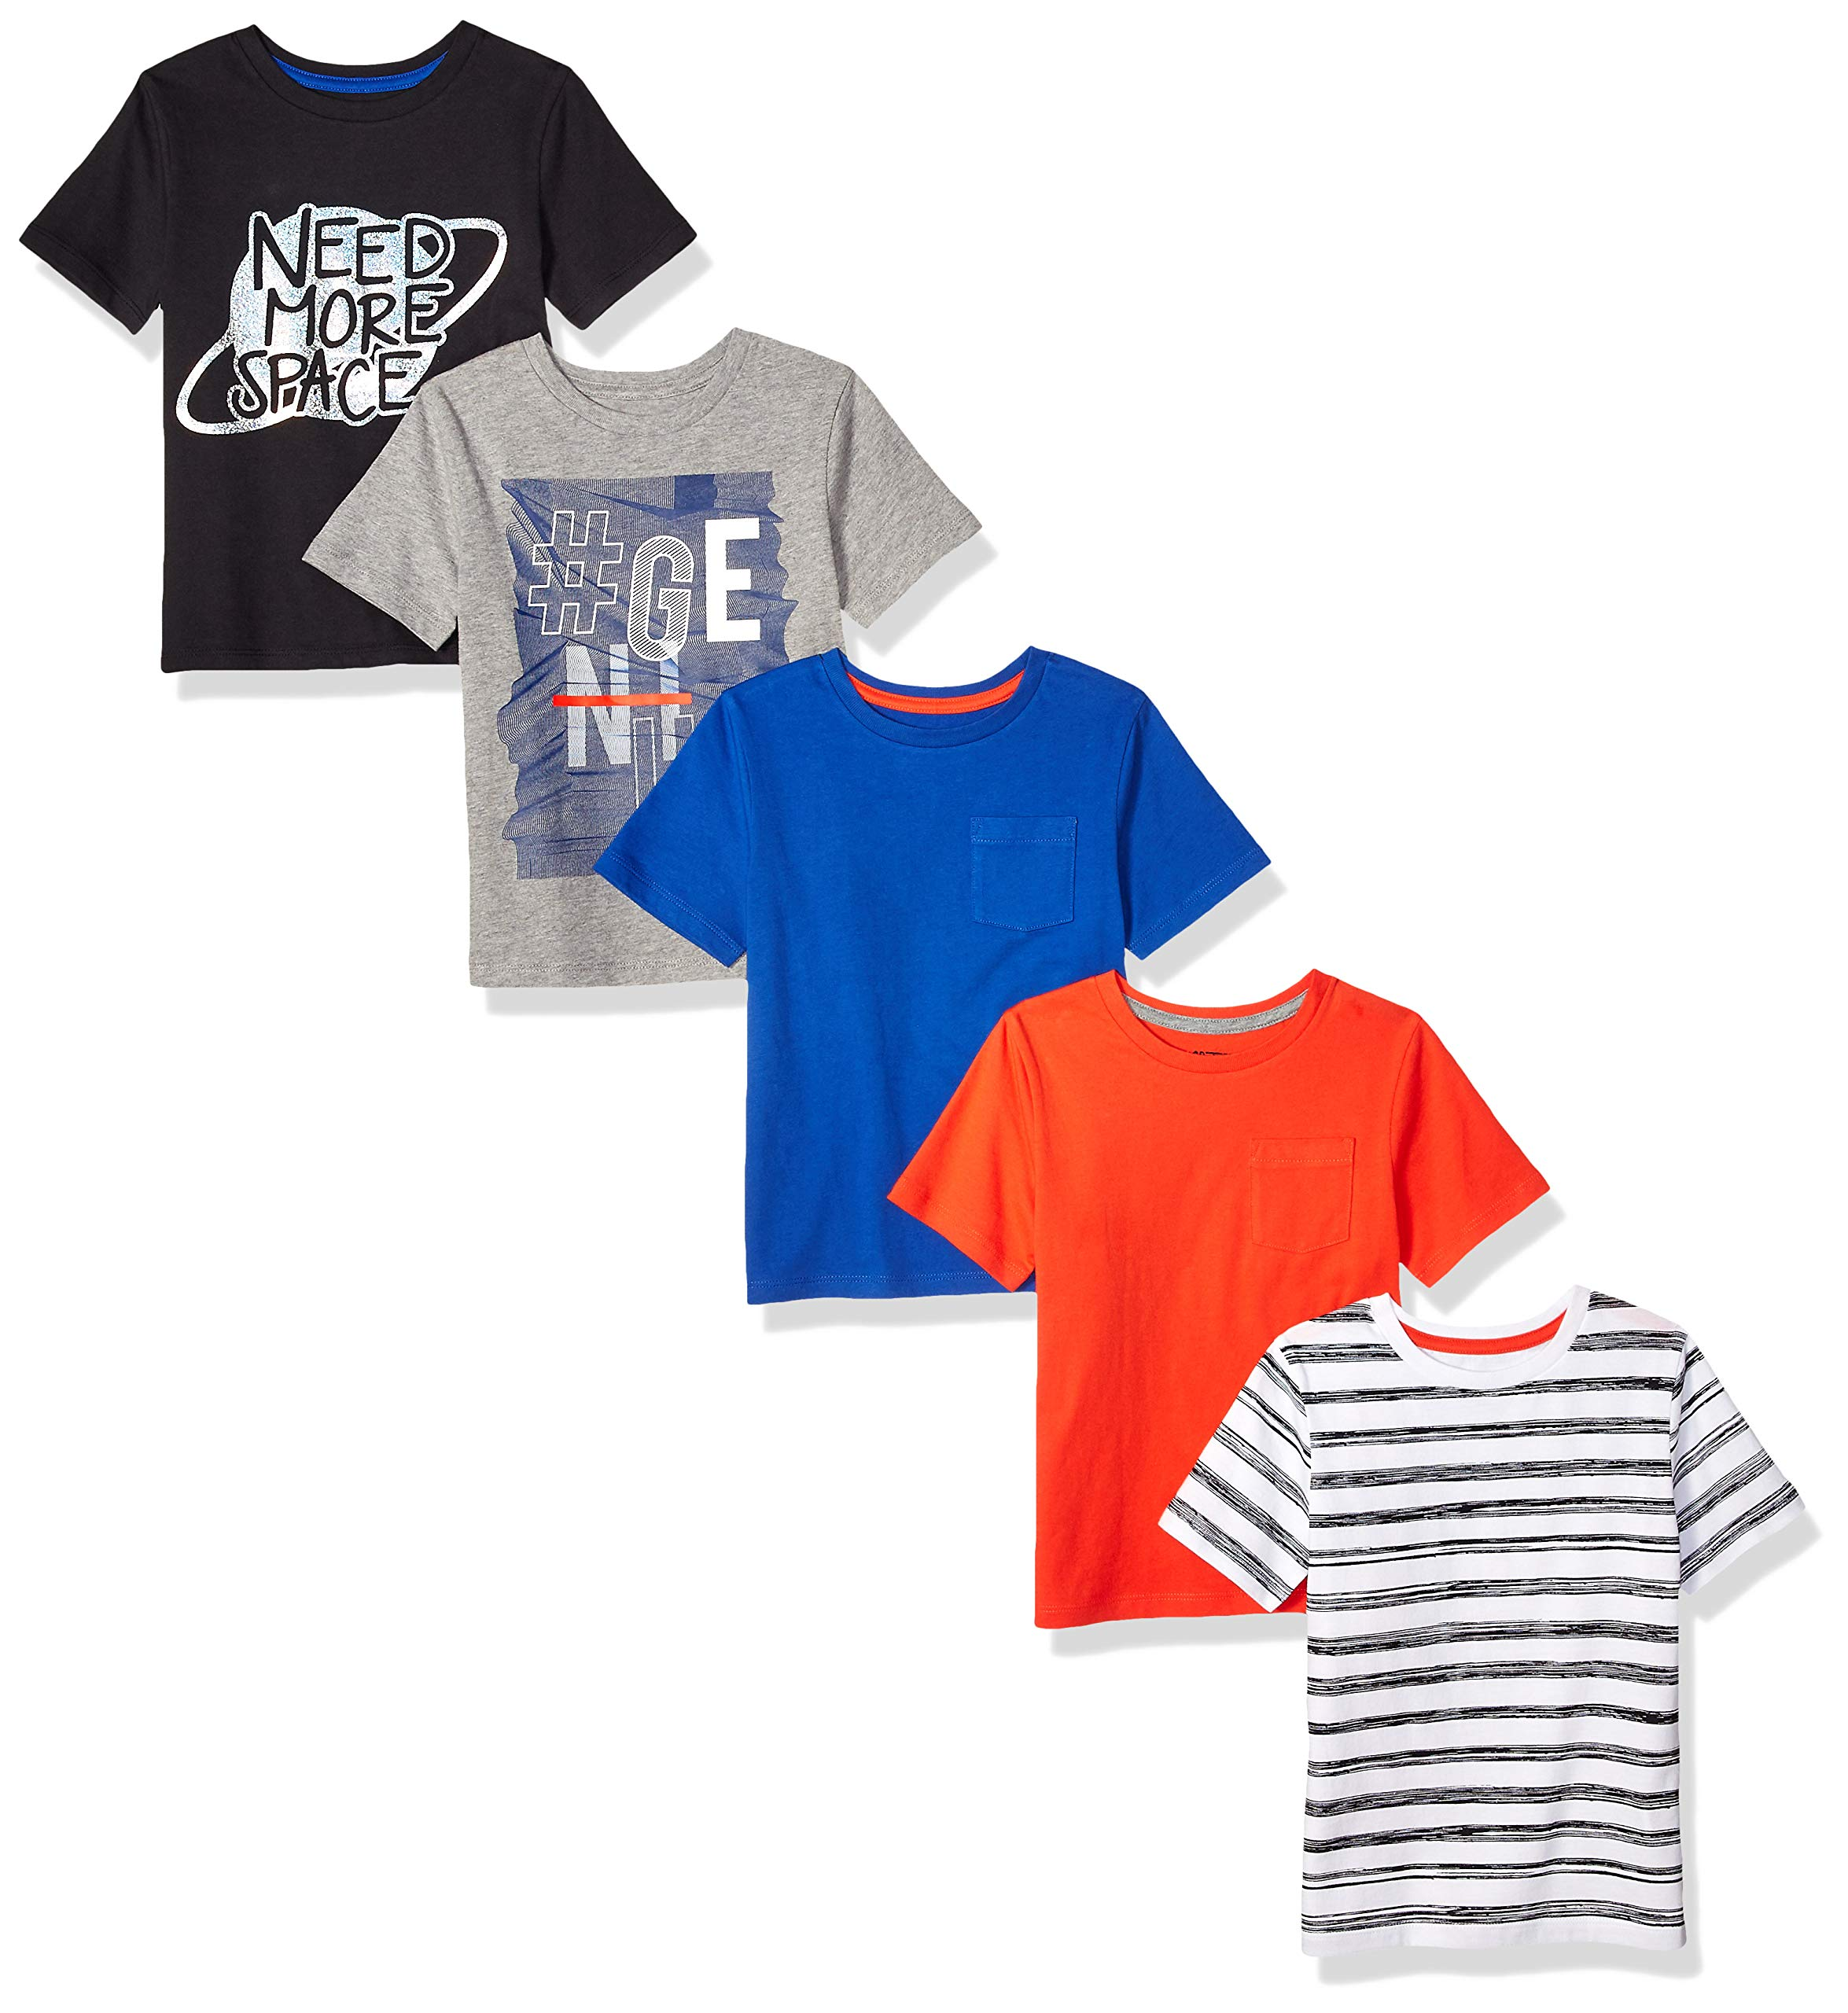 Amazon Brand - Spotted Zebra Boys' Big Kid 5-Pack Short-Sleeve T-Shirts, Need Space, Medium (8) by Spotted Zebra